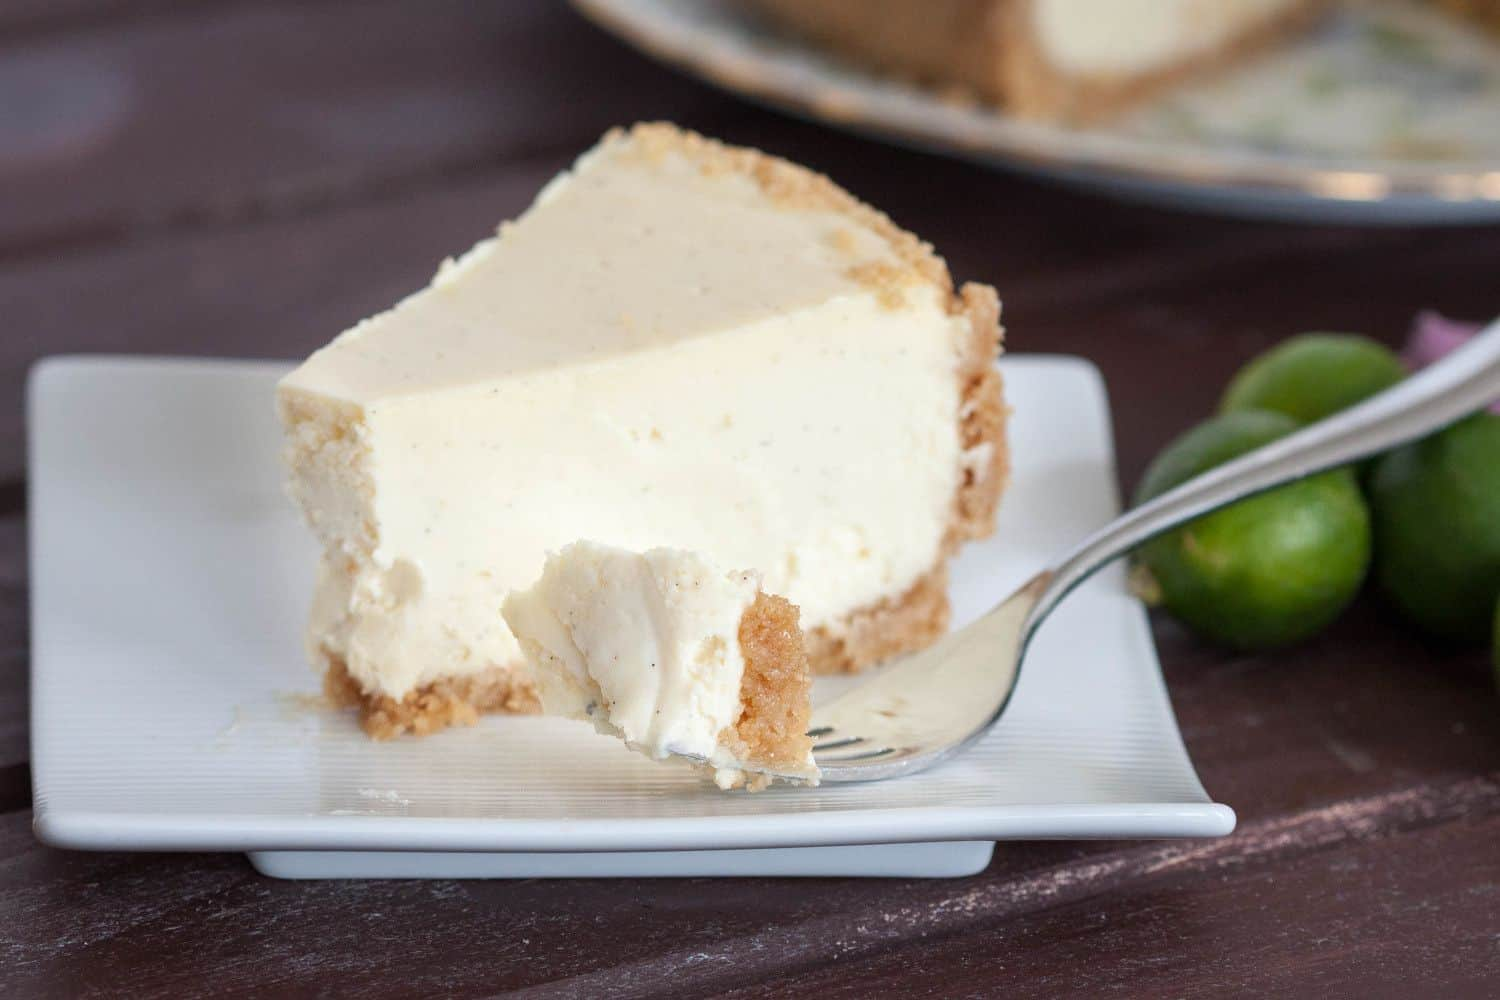 New York style key lime cheesecake recipe. Creamy without being heavy, with just the perfect touch of key lime flavor! Get the recipe on GoodieGodmother.com